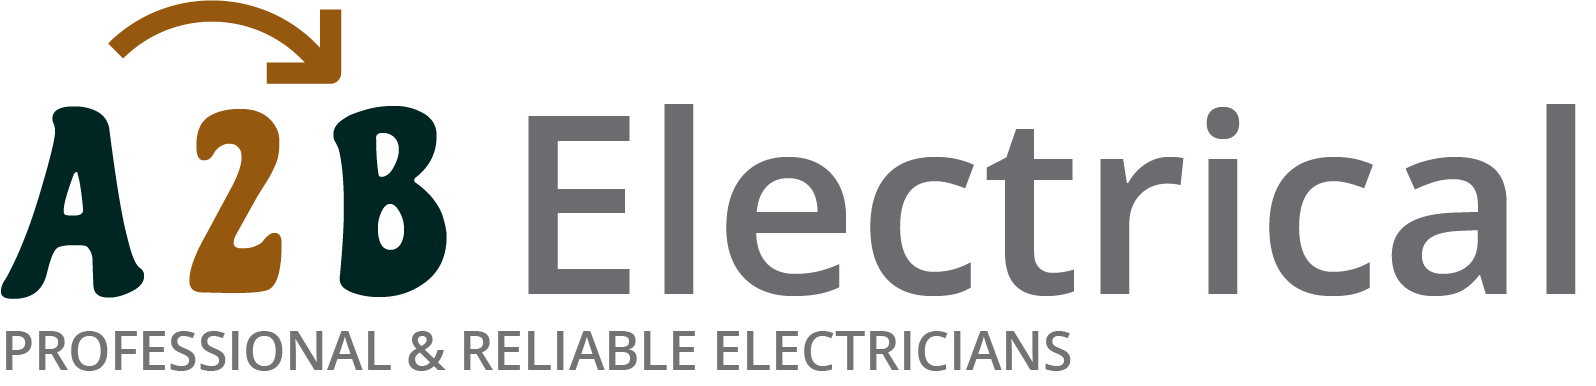 If you have electrical wiring problems in Waterloo, we can provide an electrician to have a look for you.